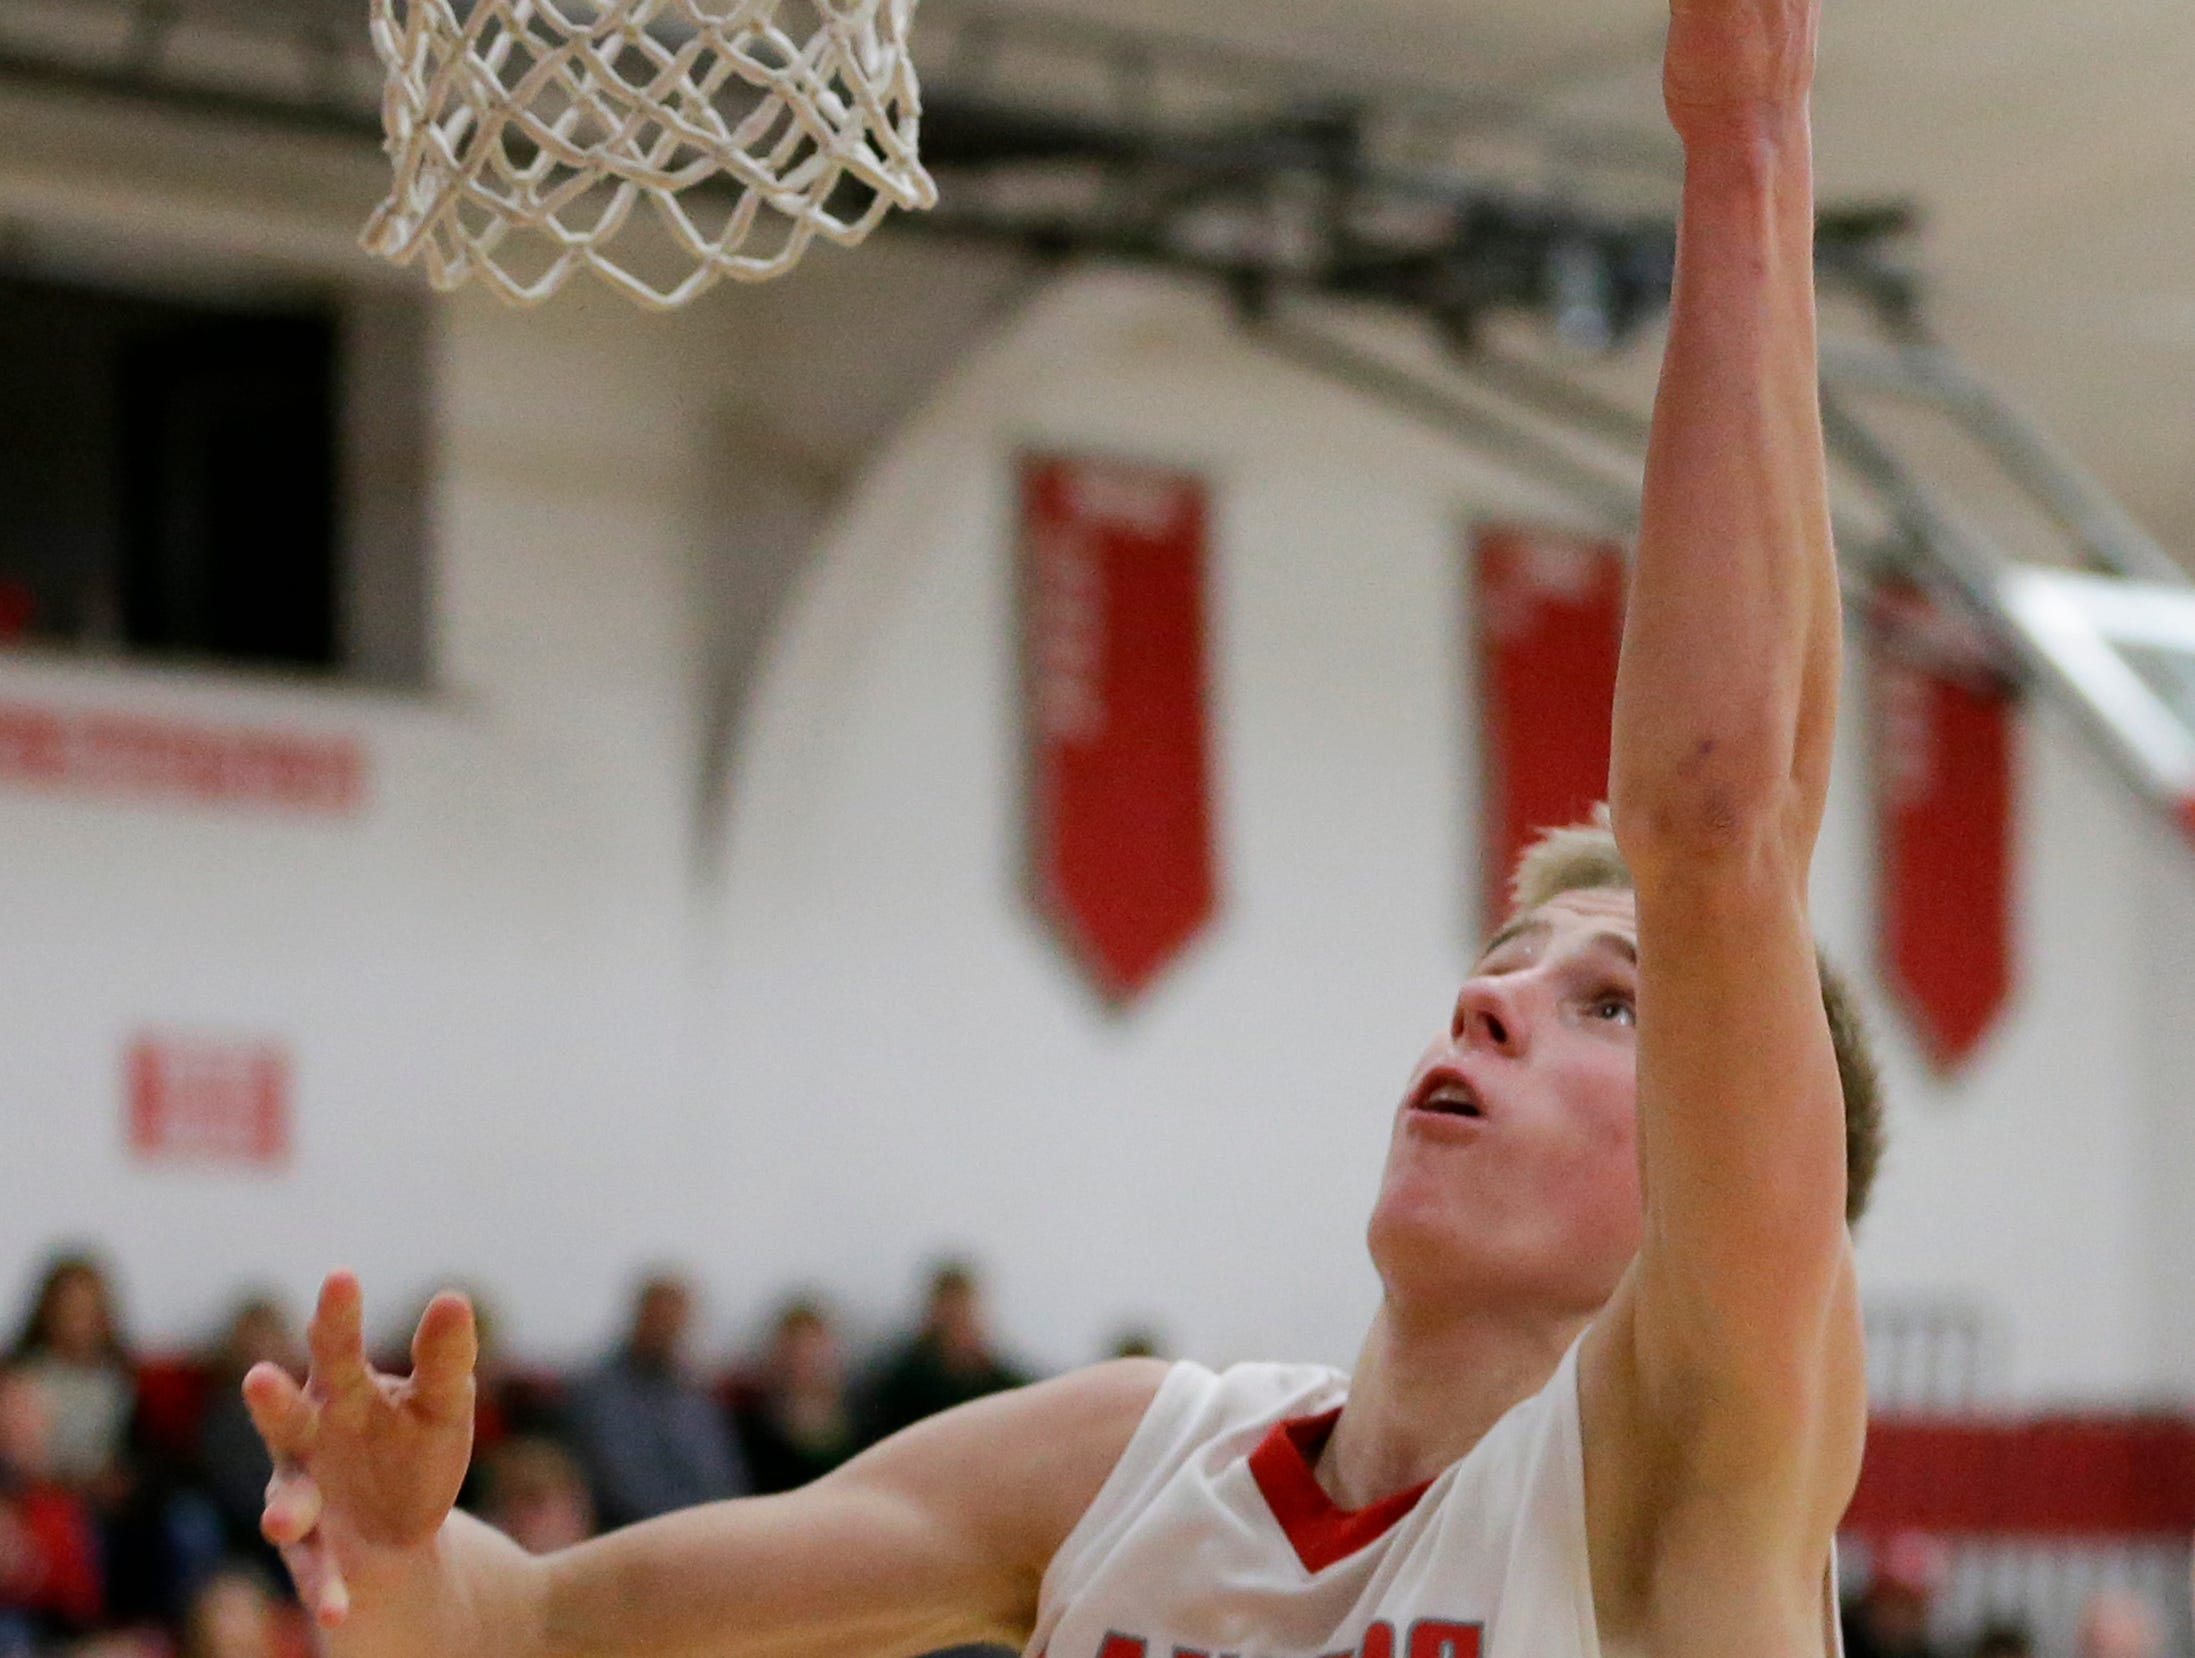 Manitowoc Lutheran's Evan Lischka takes it to the hoop against Reedsville at Manitowoc Lutheran High School Thursday, December 20, 2018, in Manitowoc, Wis. Joshua Clark/USA TODAY NETWORK-Wisconsin